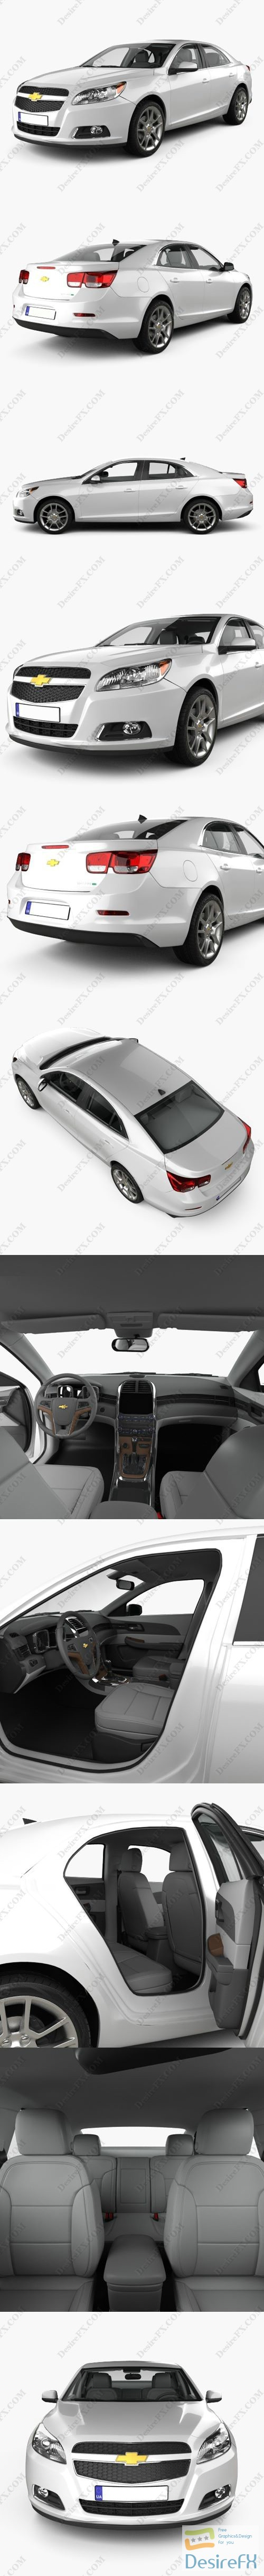 3d-models - Chevrolet Malibu 2013 with HQ interior 3D Model